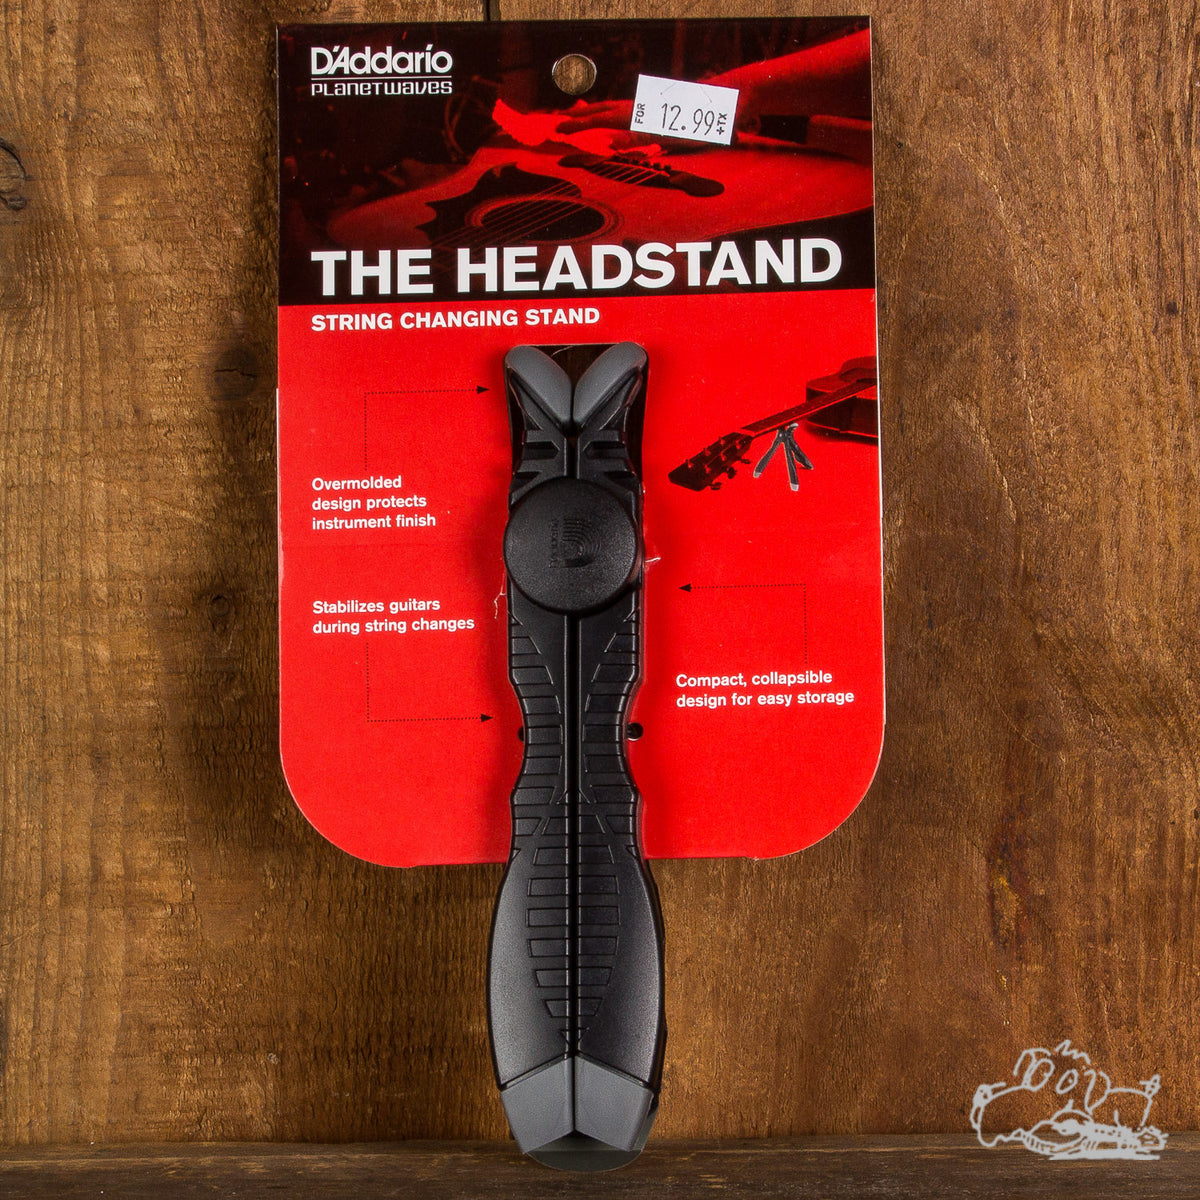 D'Addario Planet Waves The Headstand String Changing Stand